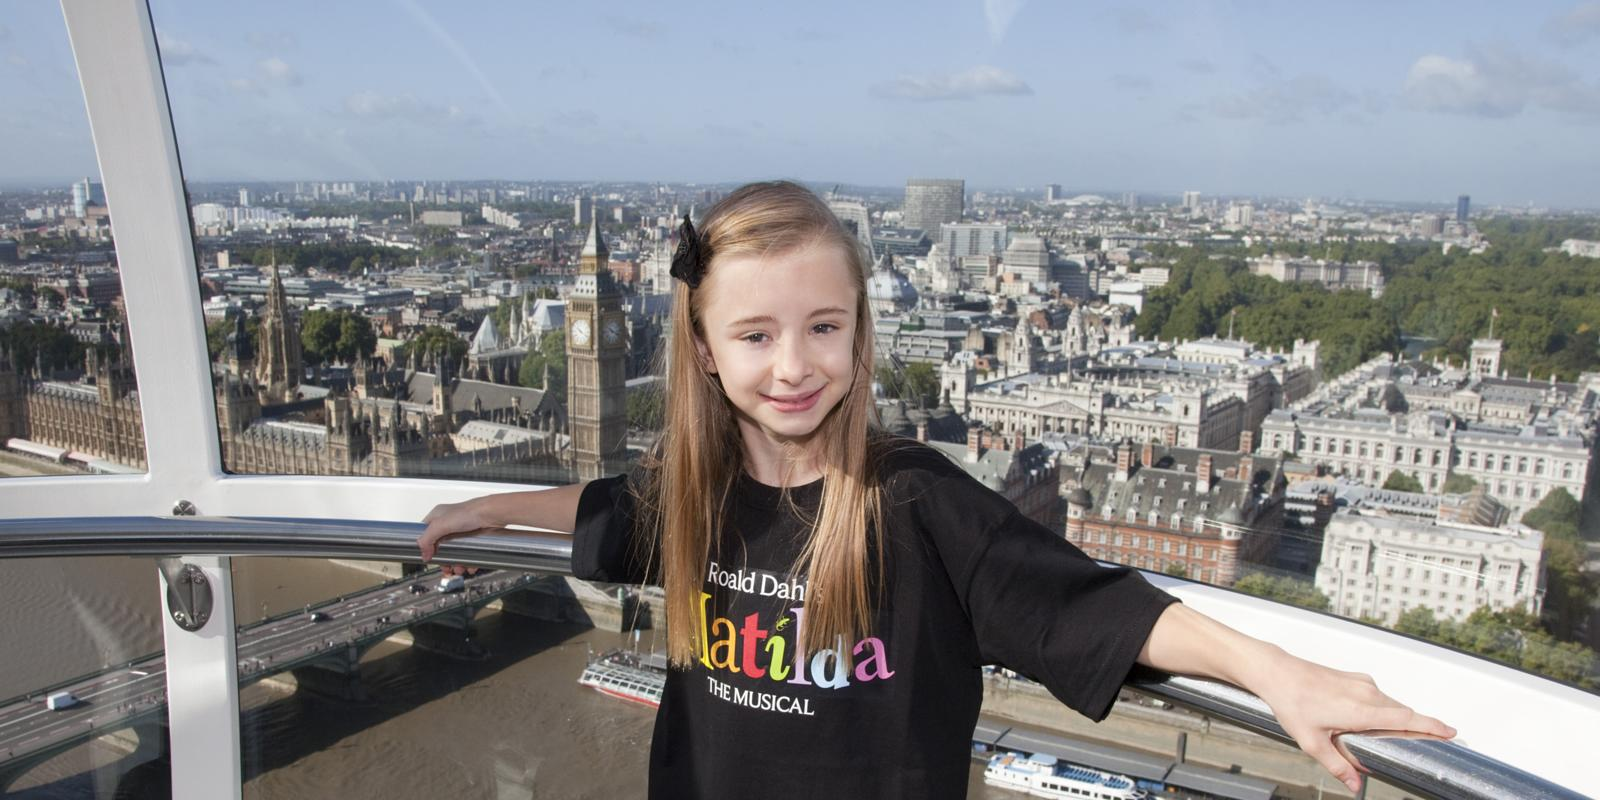 kerry ingram ask fmkerry ingram instagram, kerry ingram height, kerry ingram interview, kerry ingram twitter, kerry ingram 2016, kerry ingram matilda, kerry ingram, kerry ingram game of thrones, керри ингрэм, kerry ingram imdb, kerry ingram 2015, kerry ingram wiki, kerry ingram facebook, kerry ingram tumblr, kerry ingram it always summer, kerry ingram insta, kerry ingram les miserables, kerry ingram vine, kerry ingram ask fm, kerry ingram agent